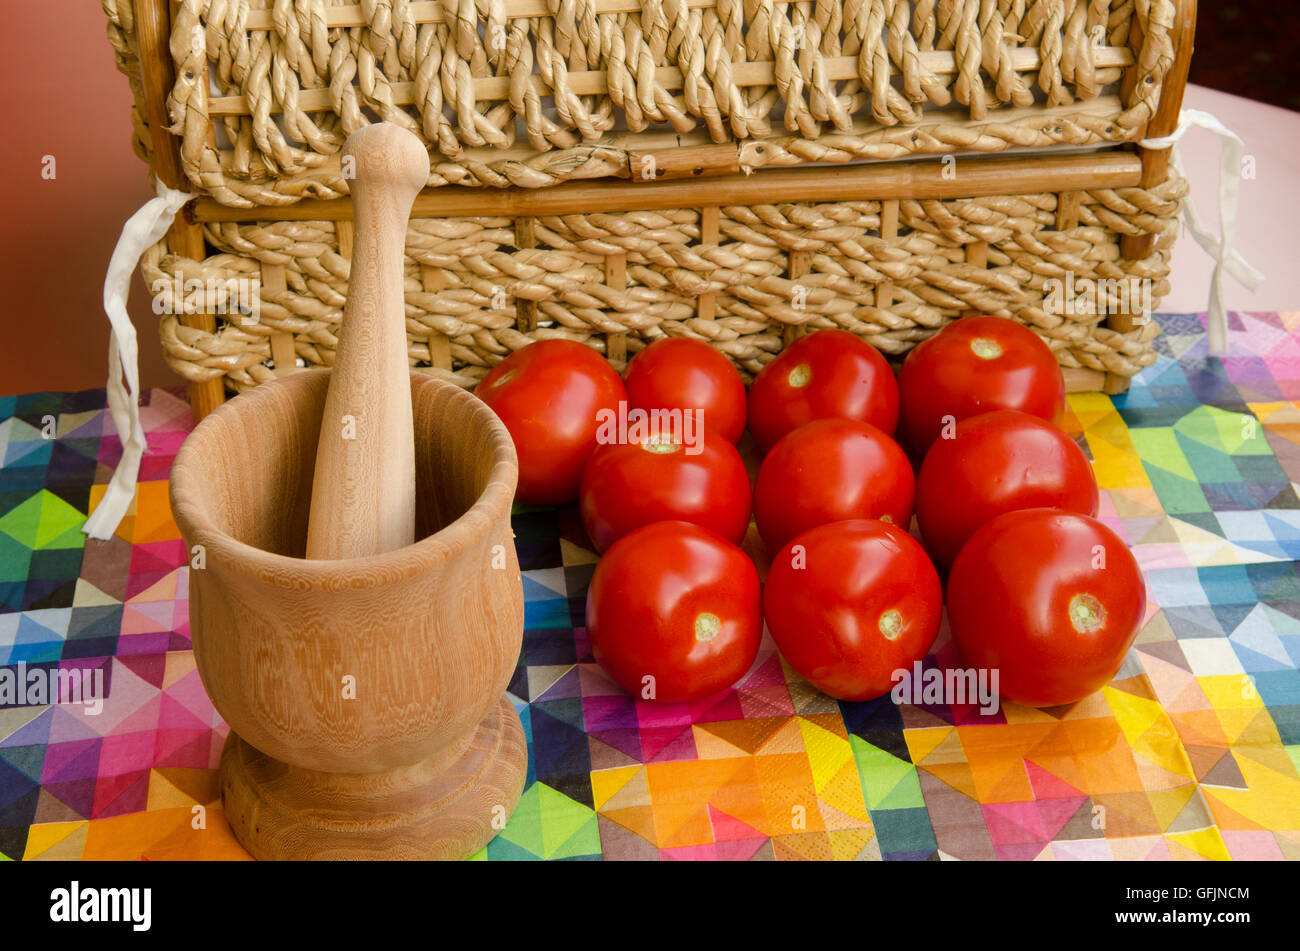 Tomatoes stacked against a woven basket with wooden mortar and pestle Stock Photo